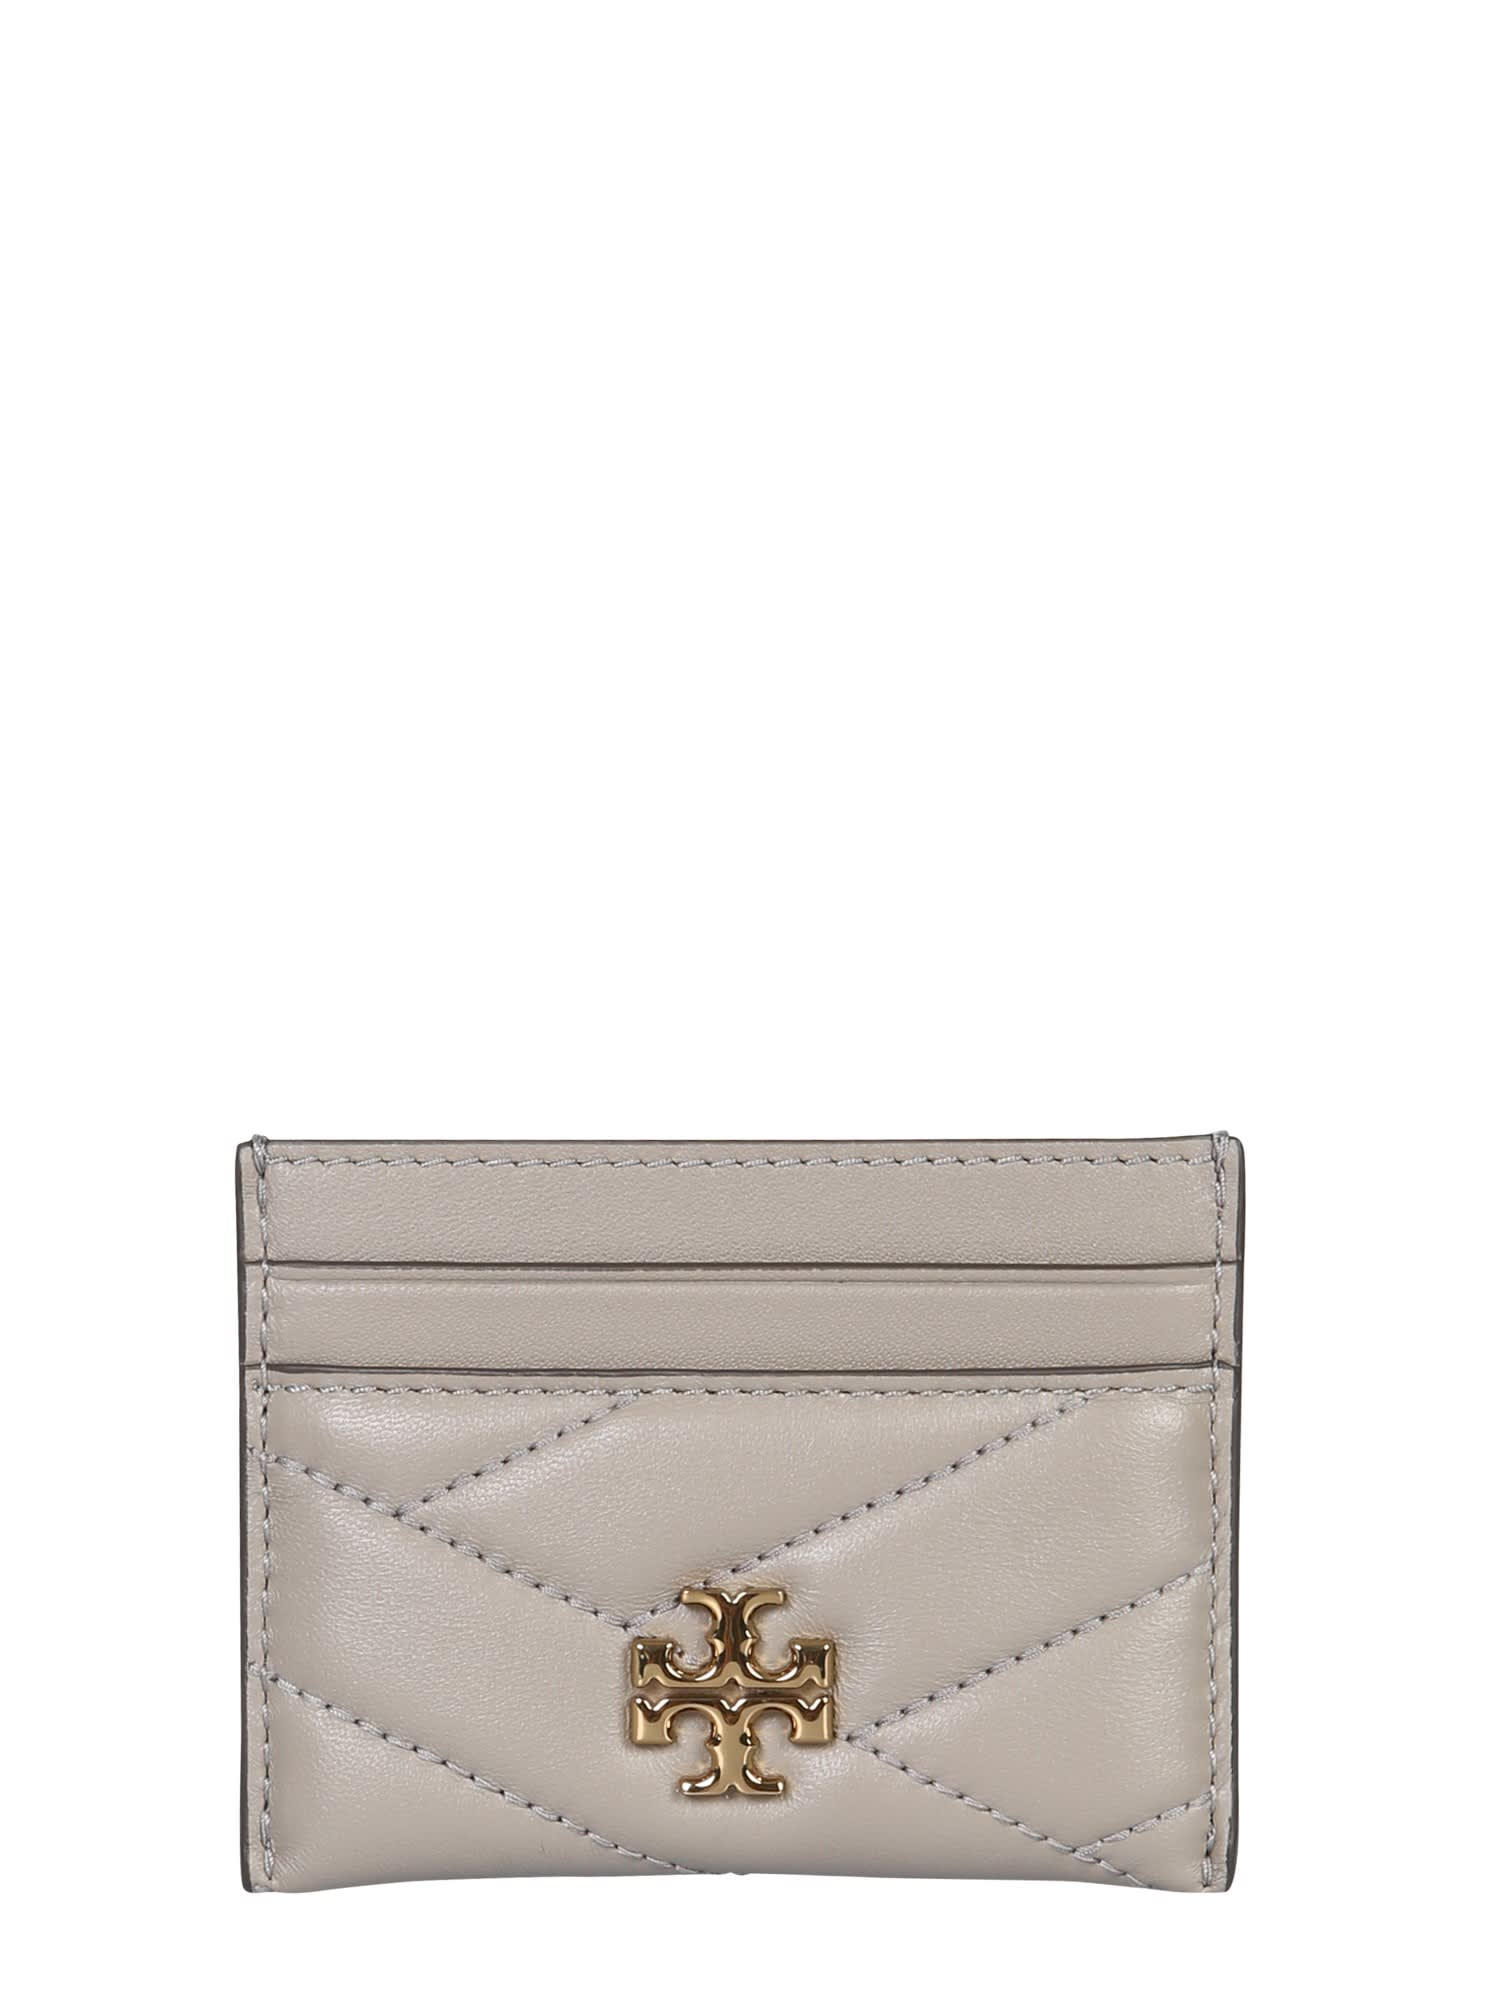 Tory Burch Cardholders KIRA CARD HOLDER